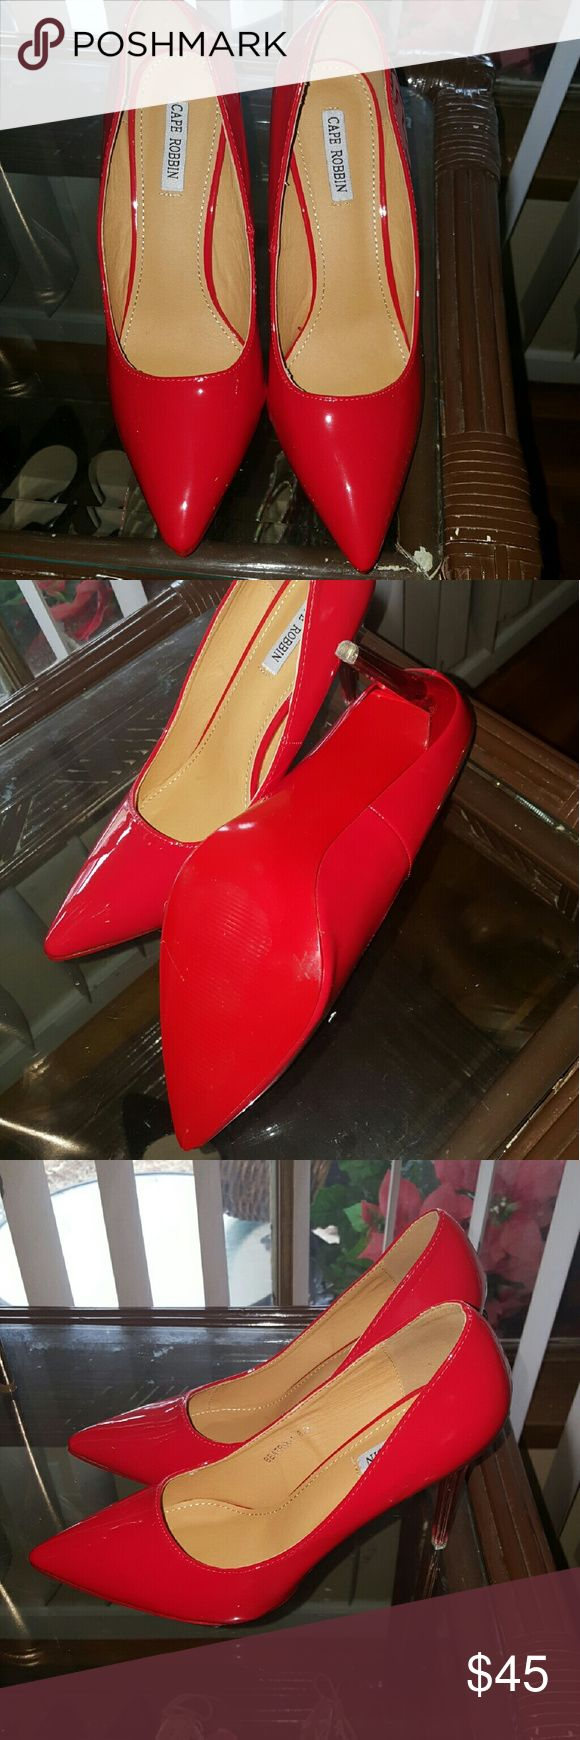 Gorgeous red shoe with red bottom Fabulous all red everything  shoes even the bottom of the shoe is red yes sure would catch eye Shoes Heels